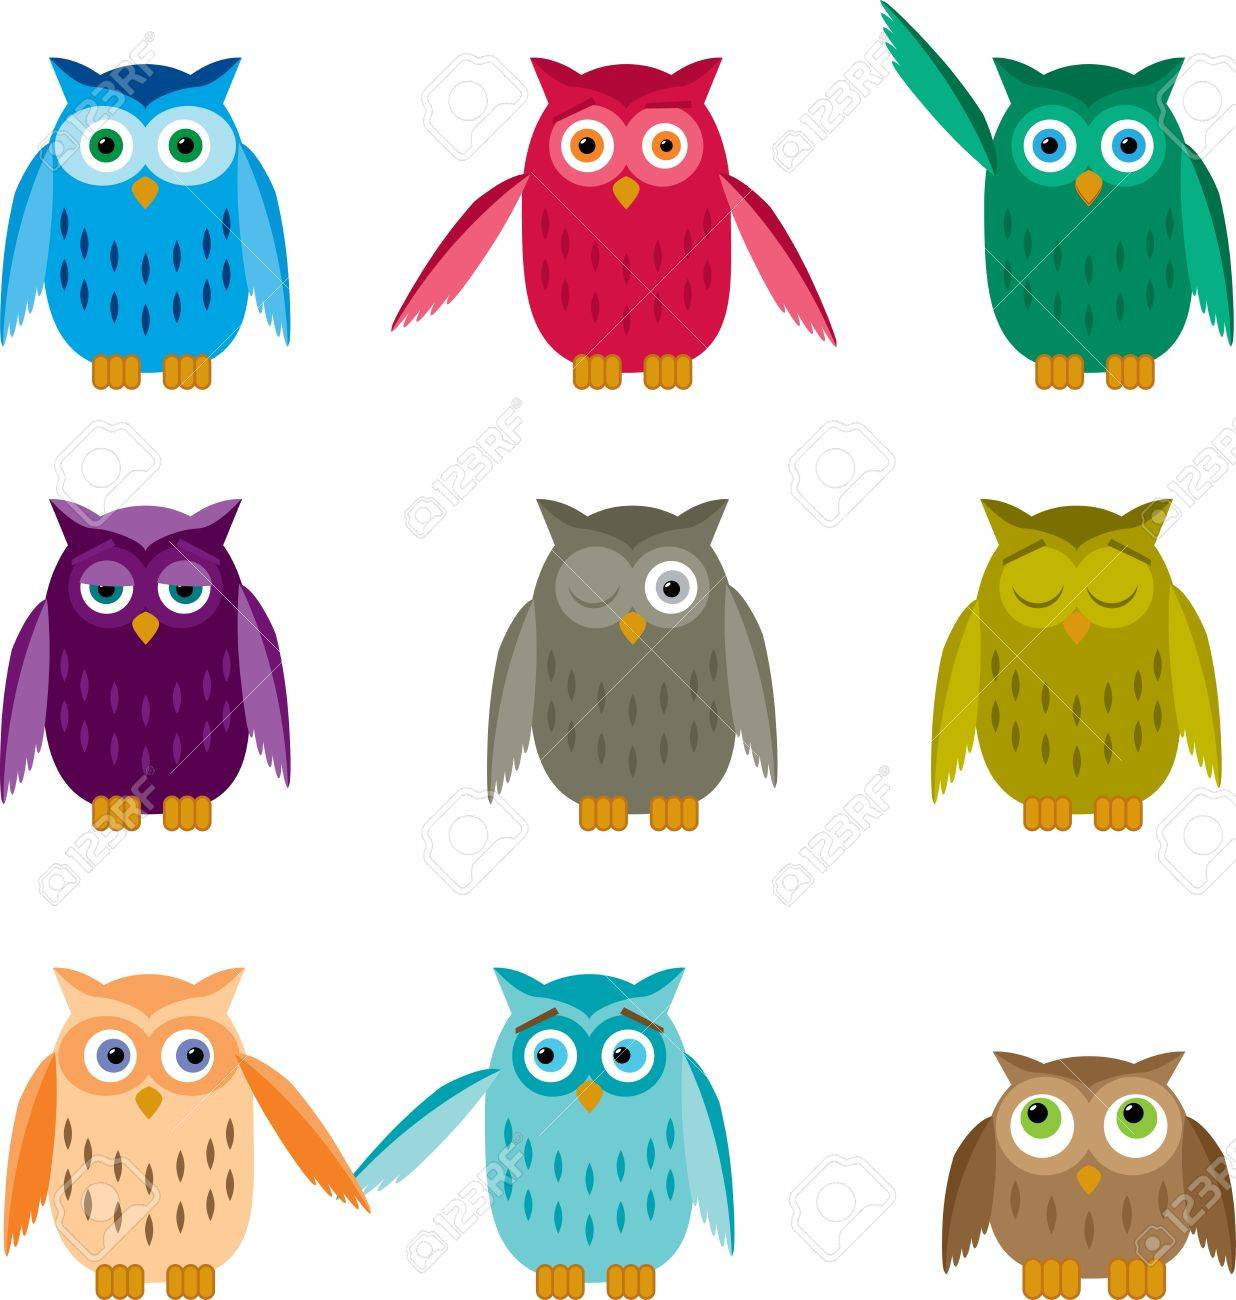 Set of colorful owls with different emotions. Stock Vector - 15592352